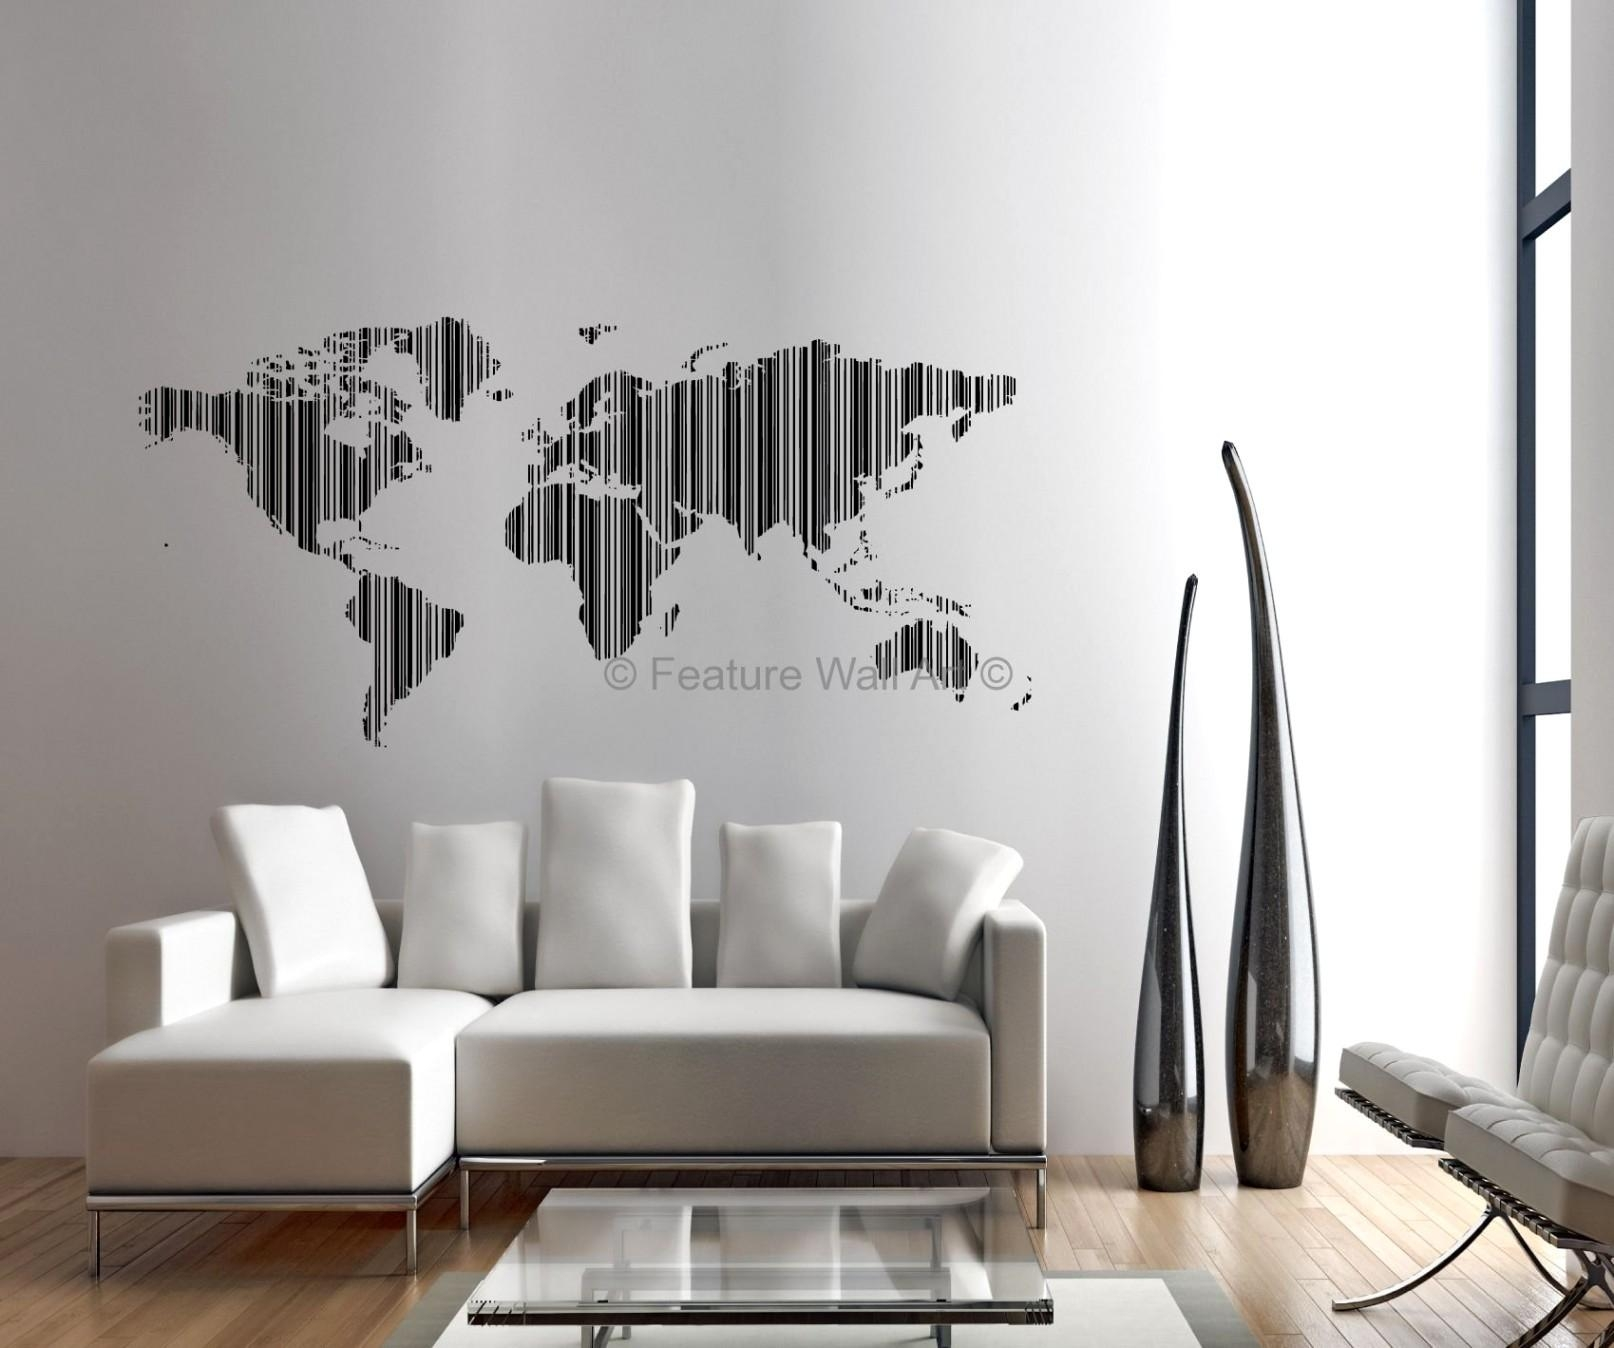 Best Of Unique Modern Wall Art And Decor With Regard To Unique Modern Wall Art And Decor (Image 4 of 20)